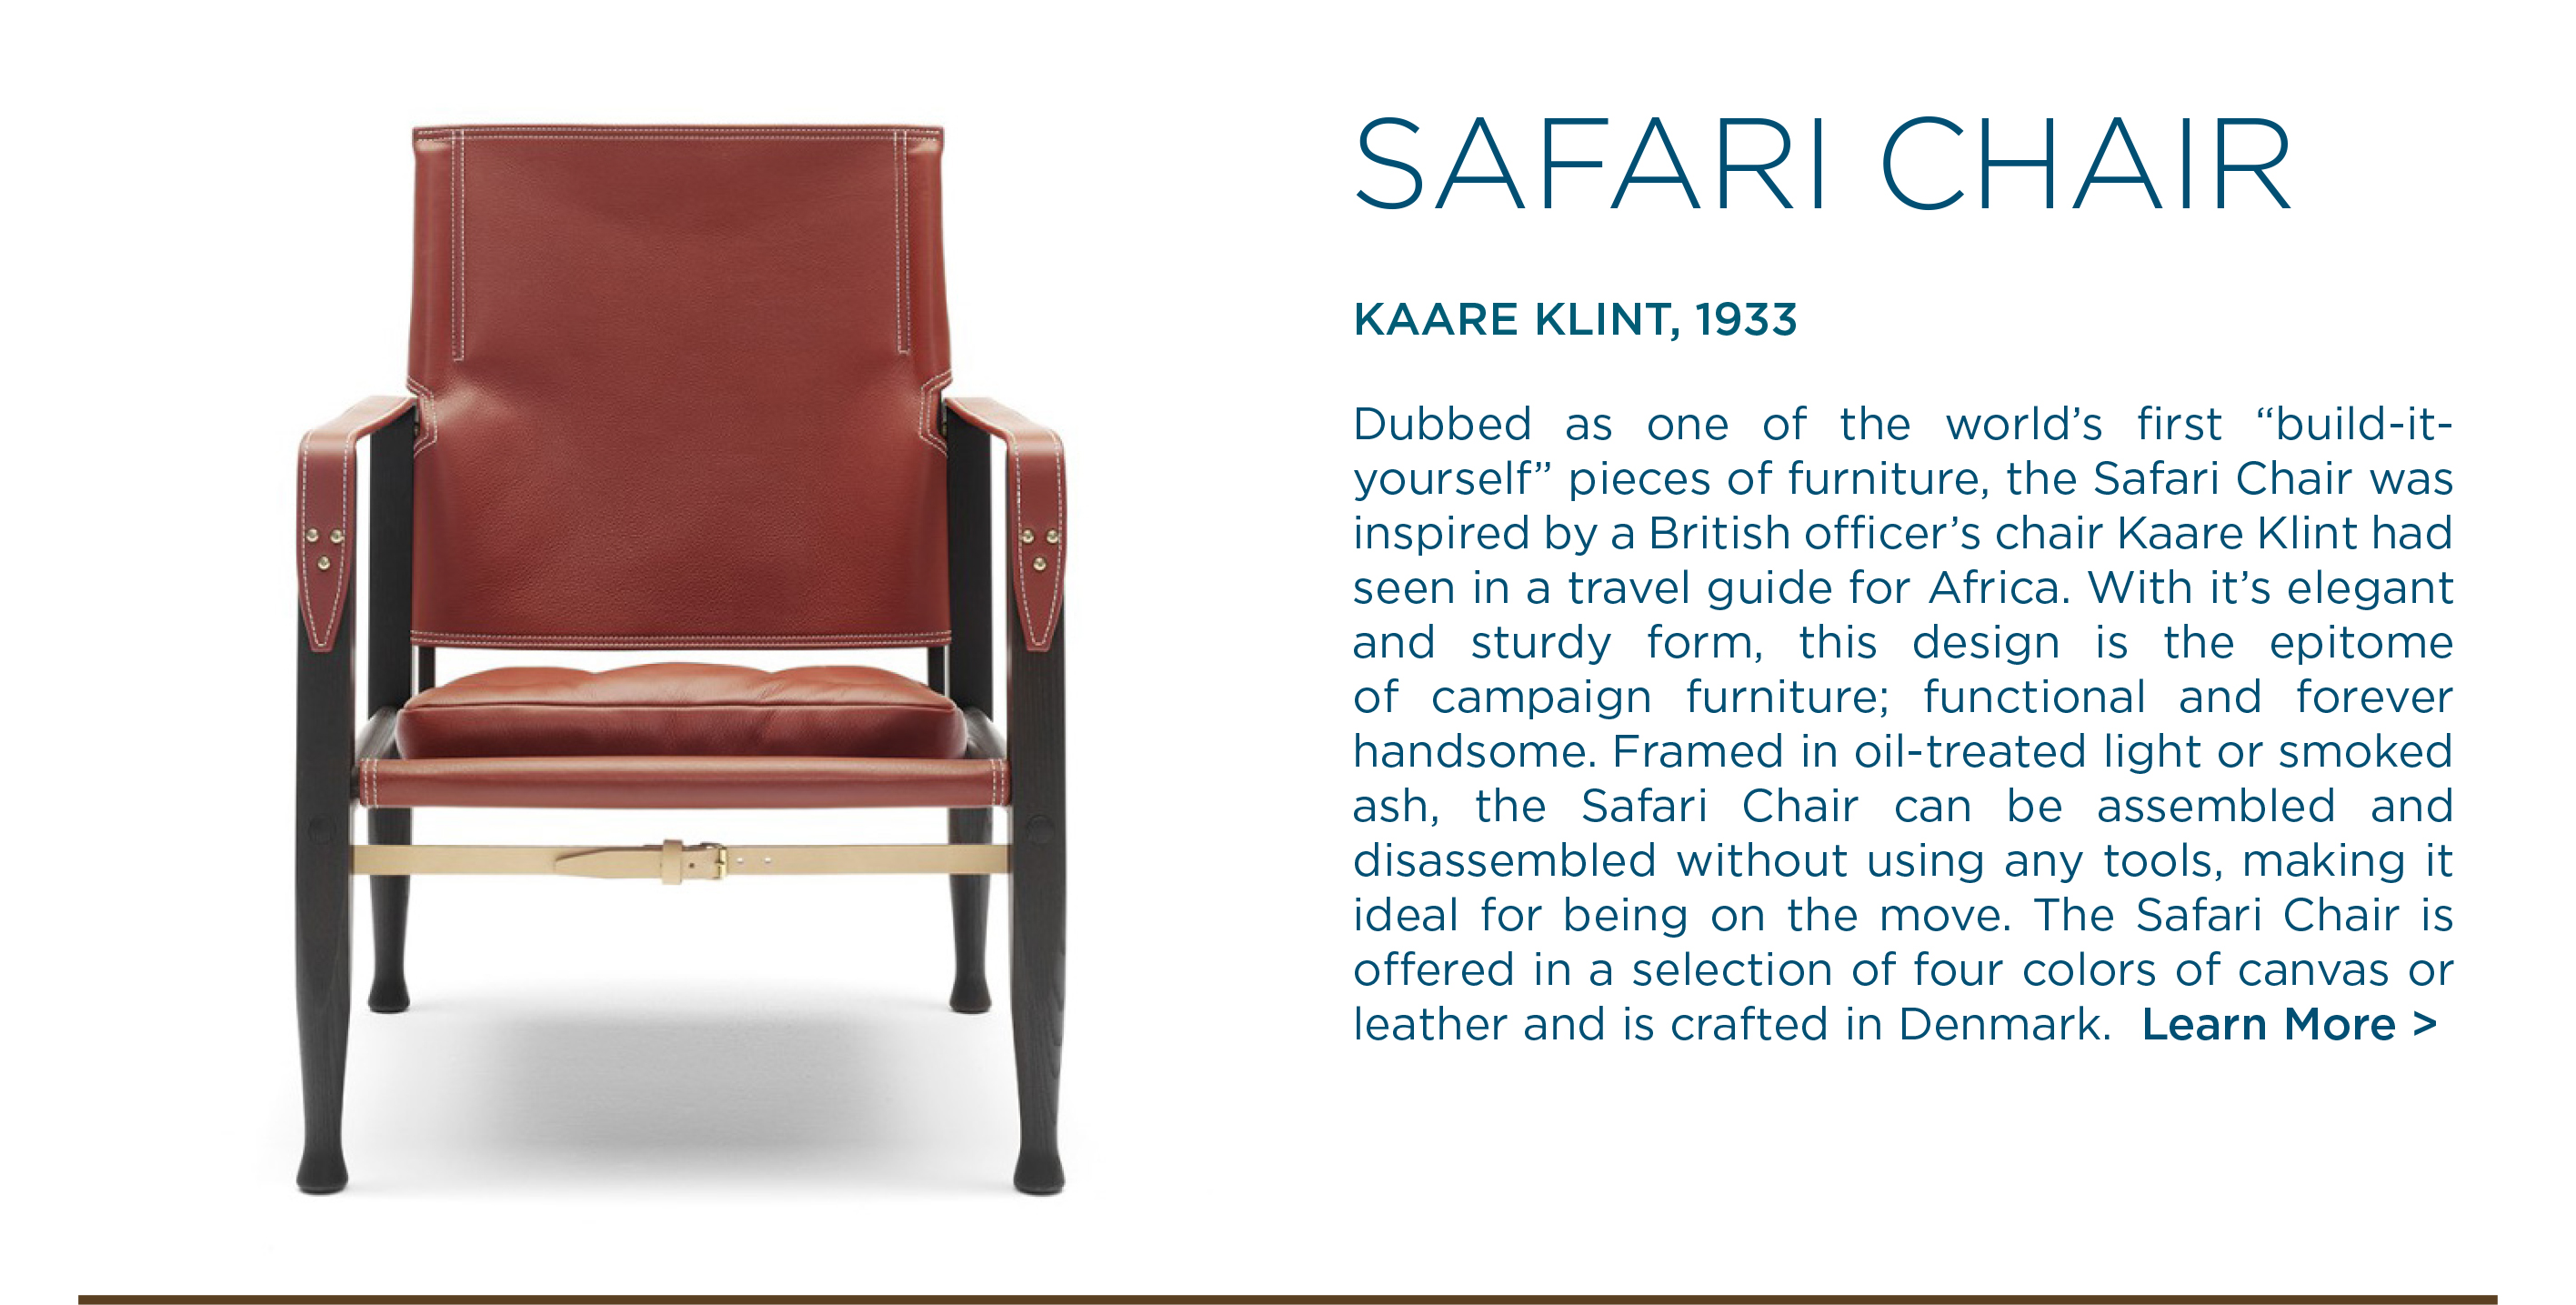 kaare klint carl hansen and son safari chair suite ny